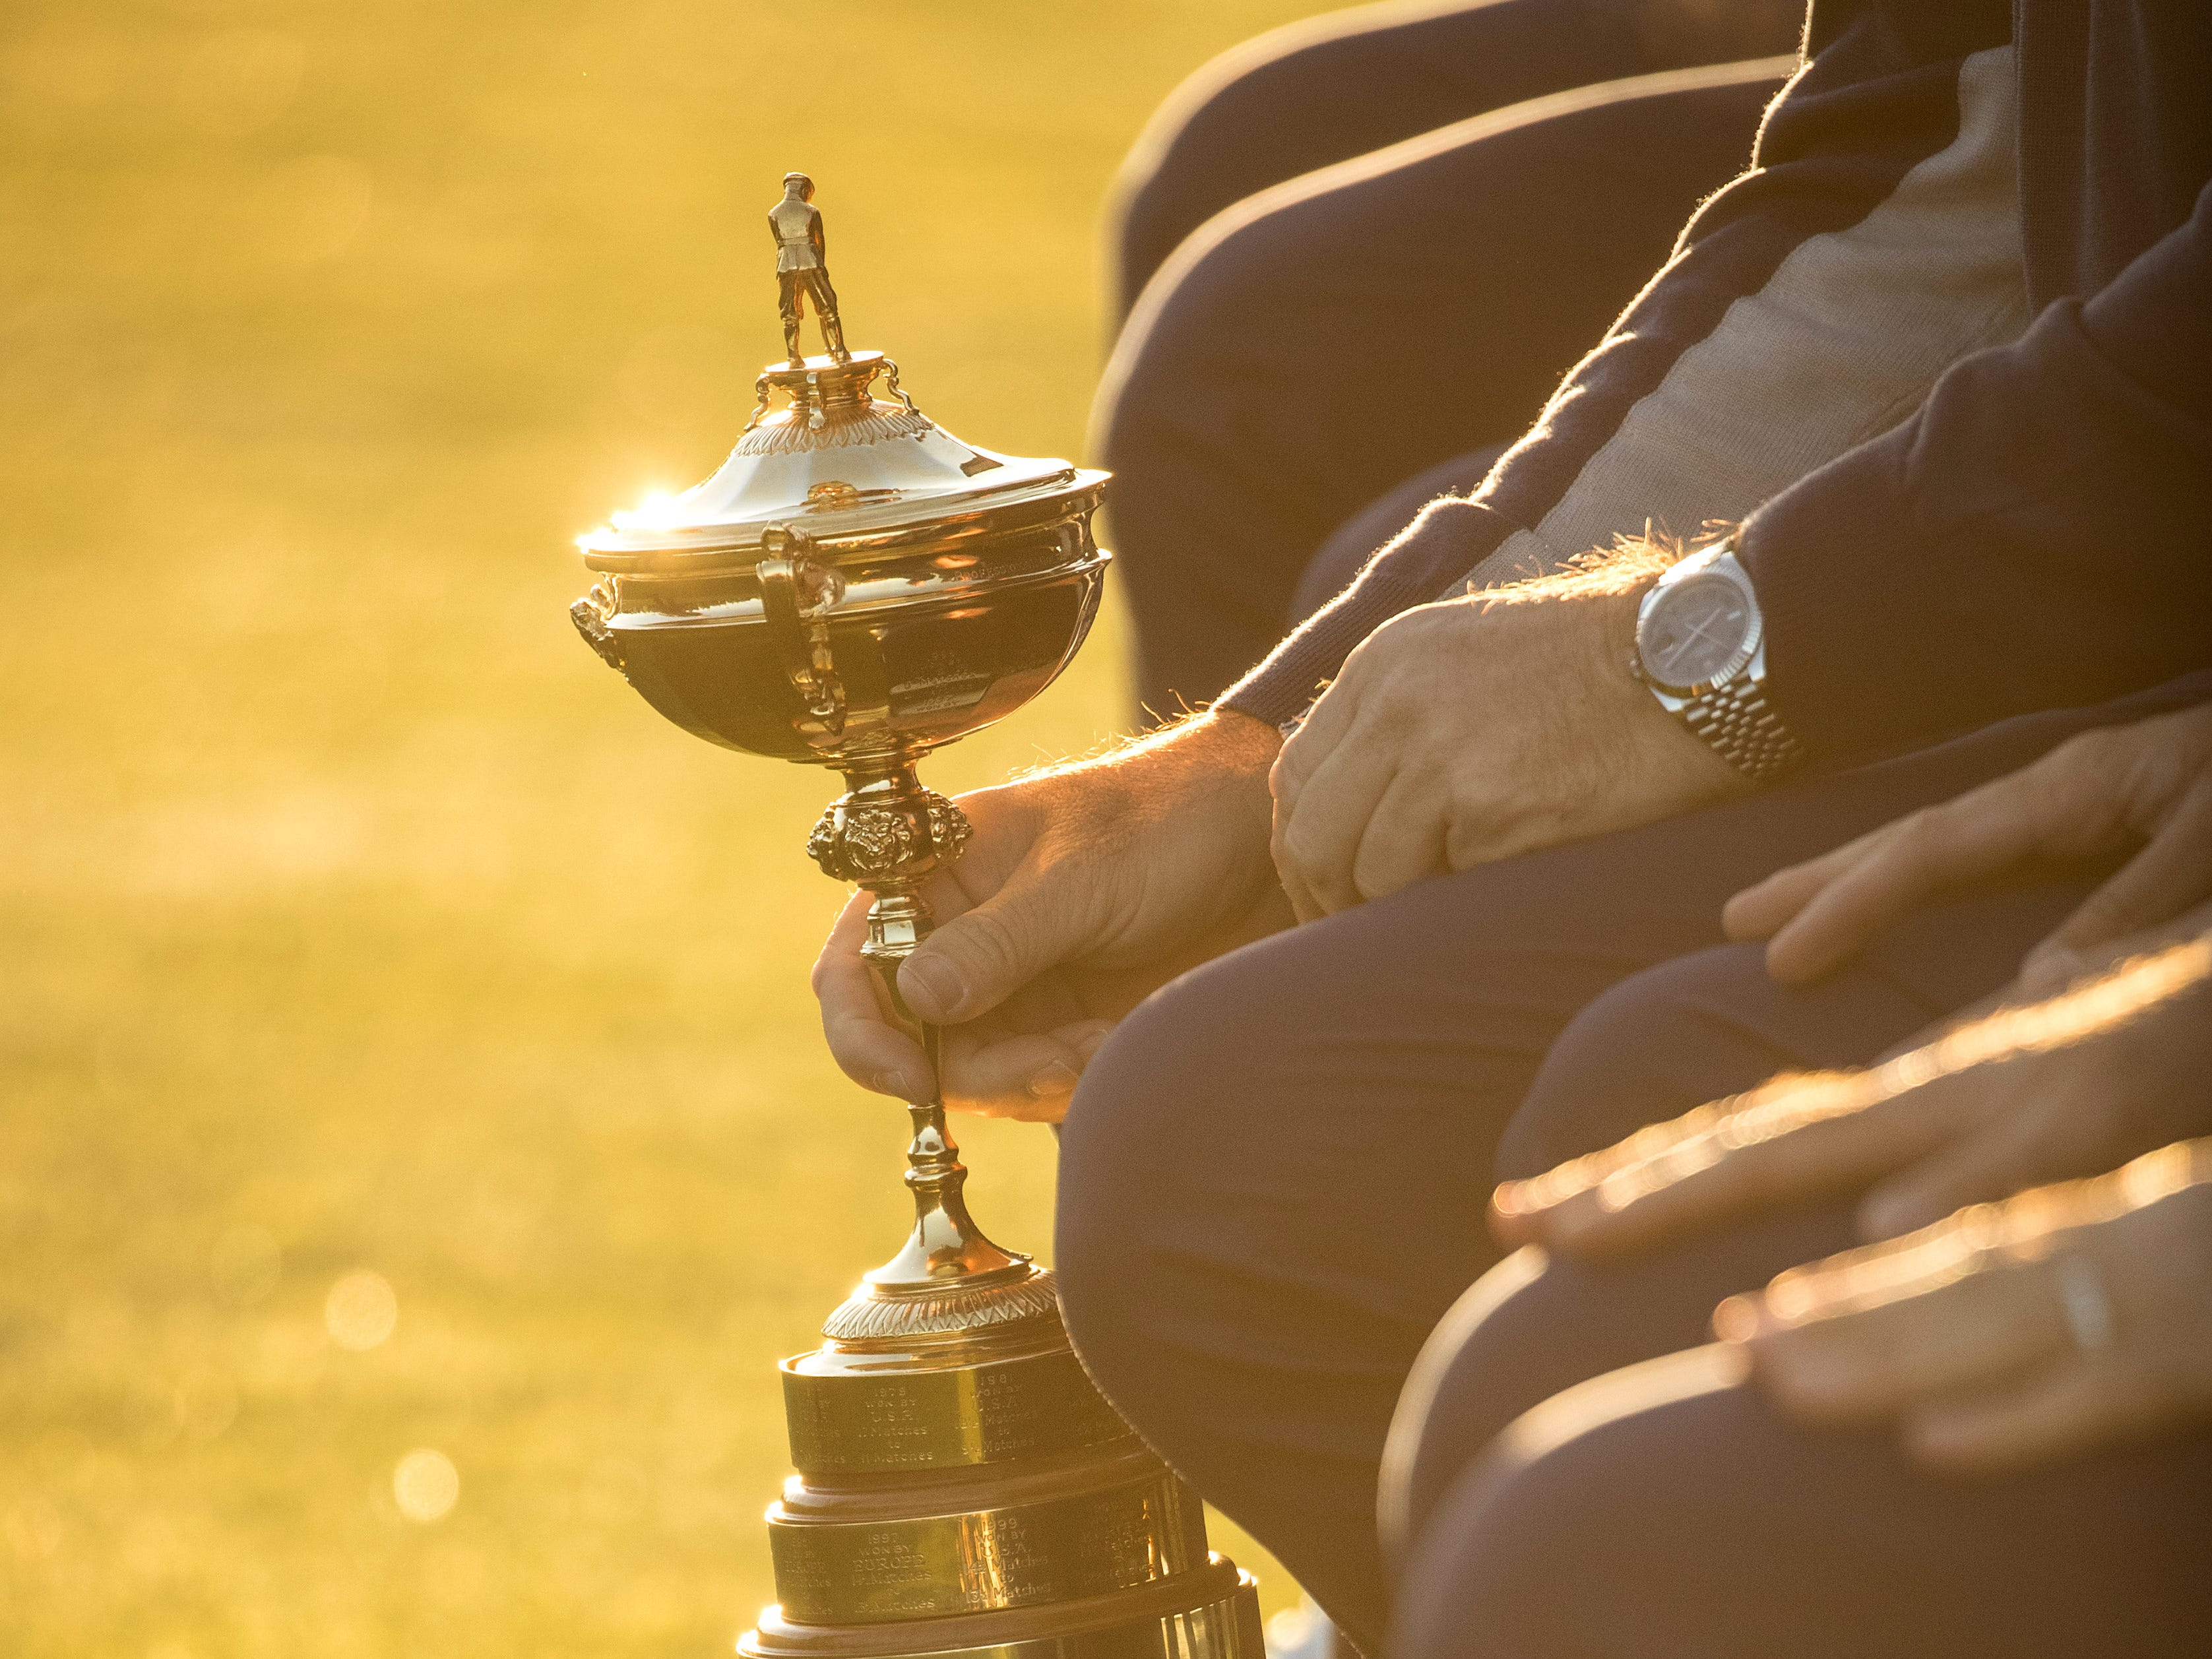 Captain Thomas Bjorn of Europe lifts up the Ryder Cup trophy during a European Team photo shoot.